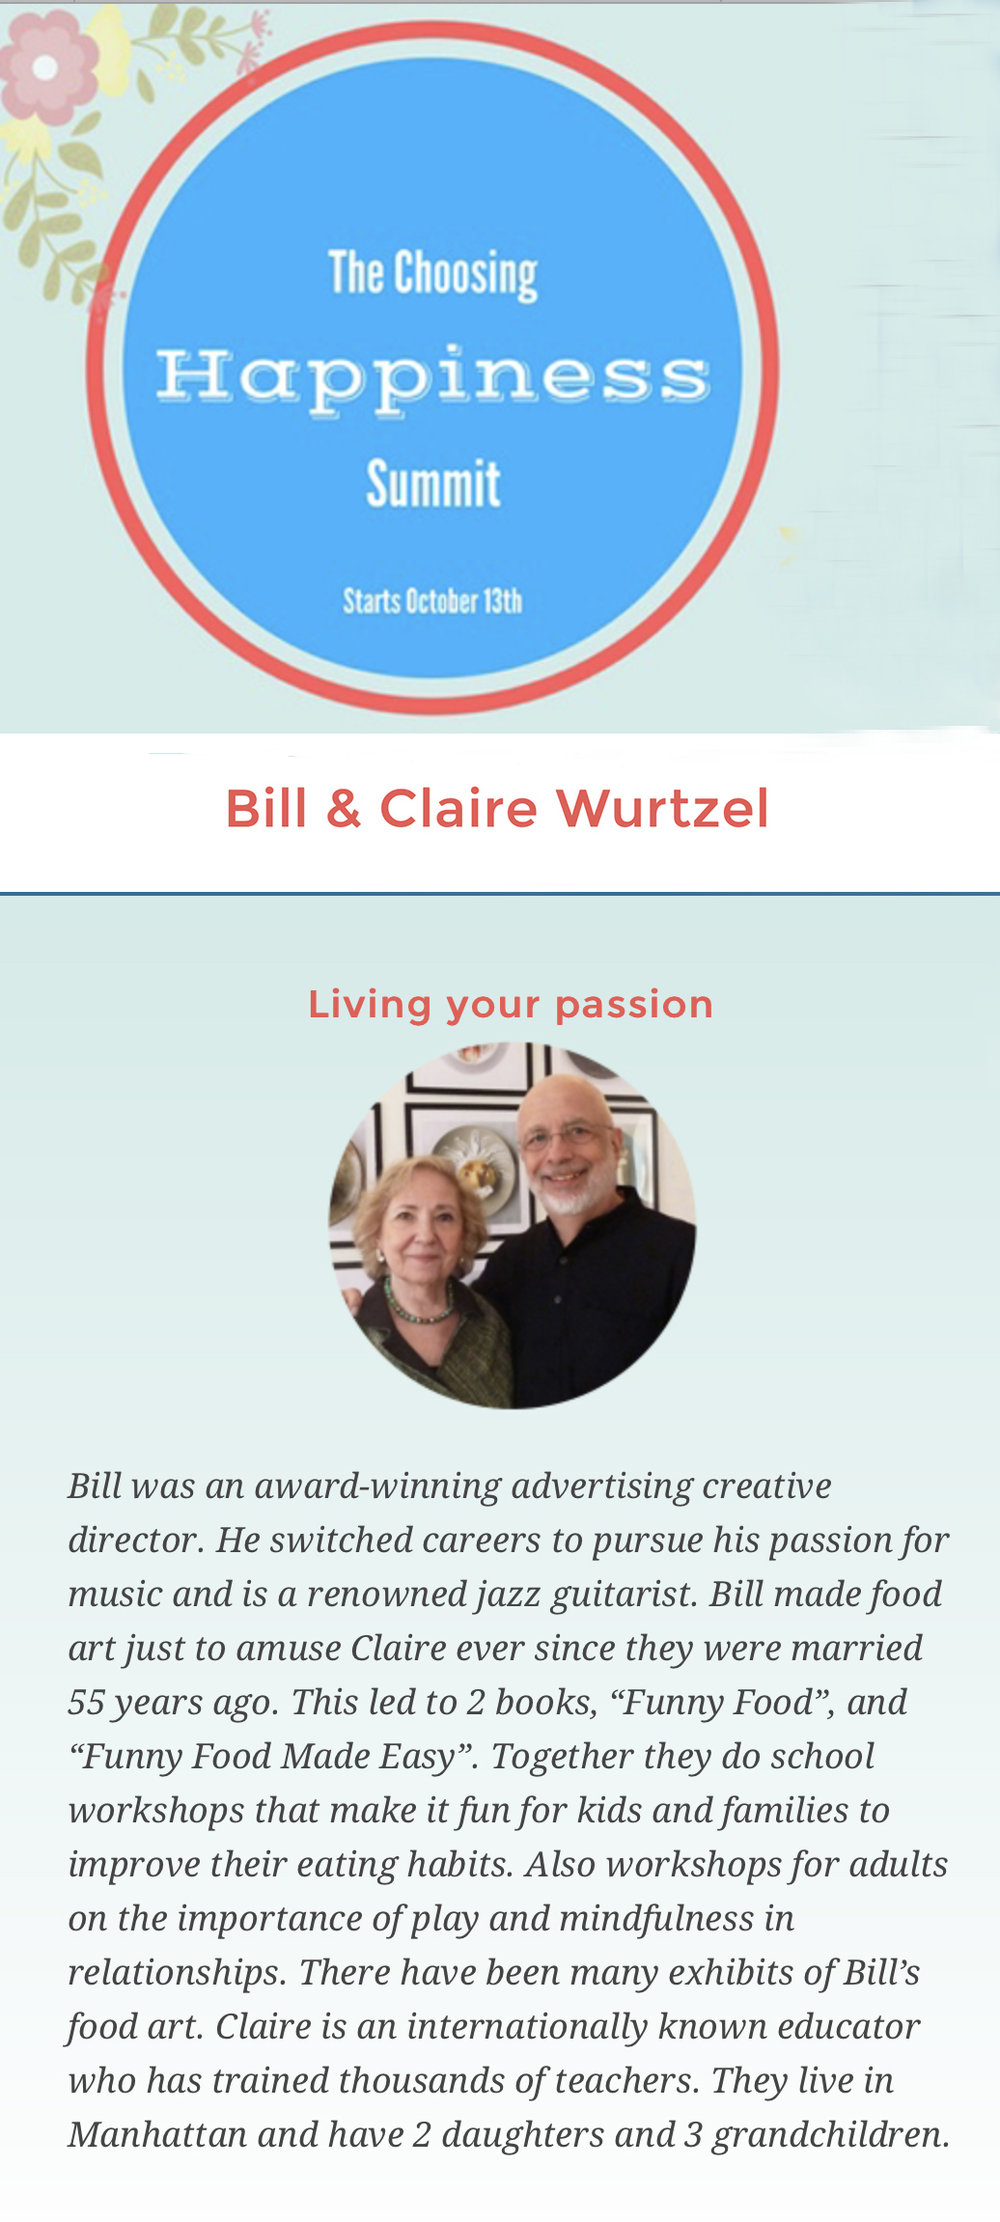 Happiness Summit: Living your passion